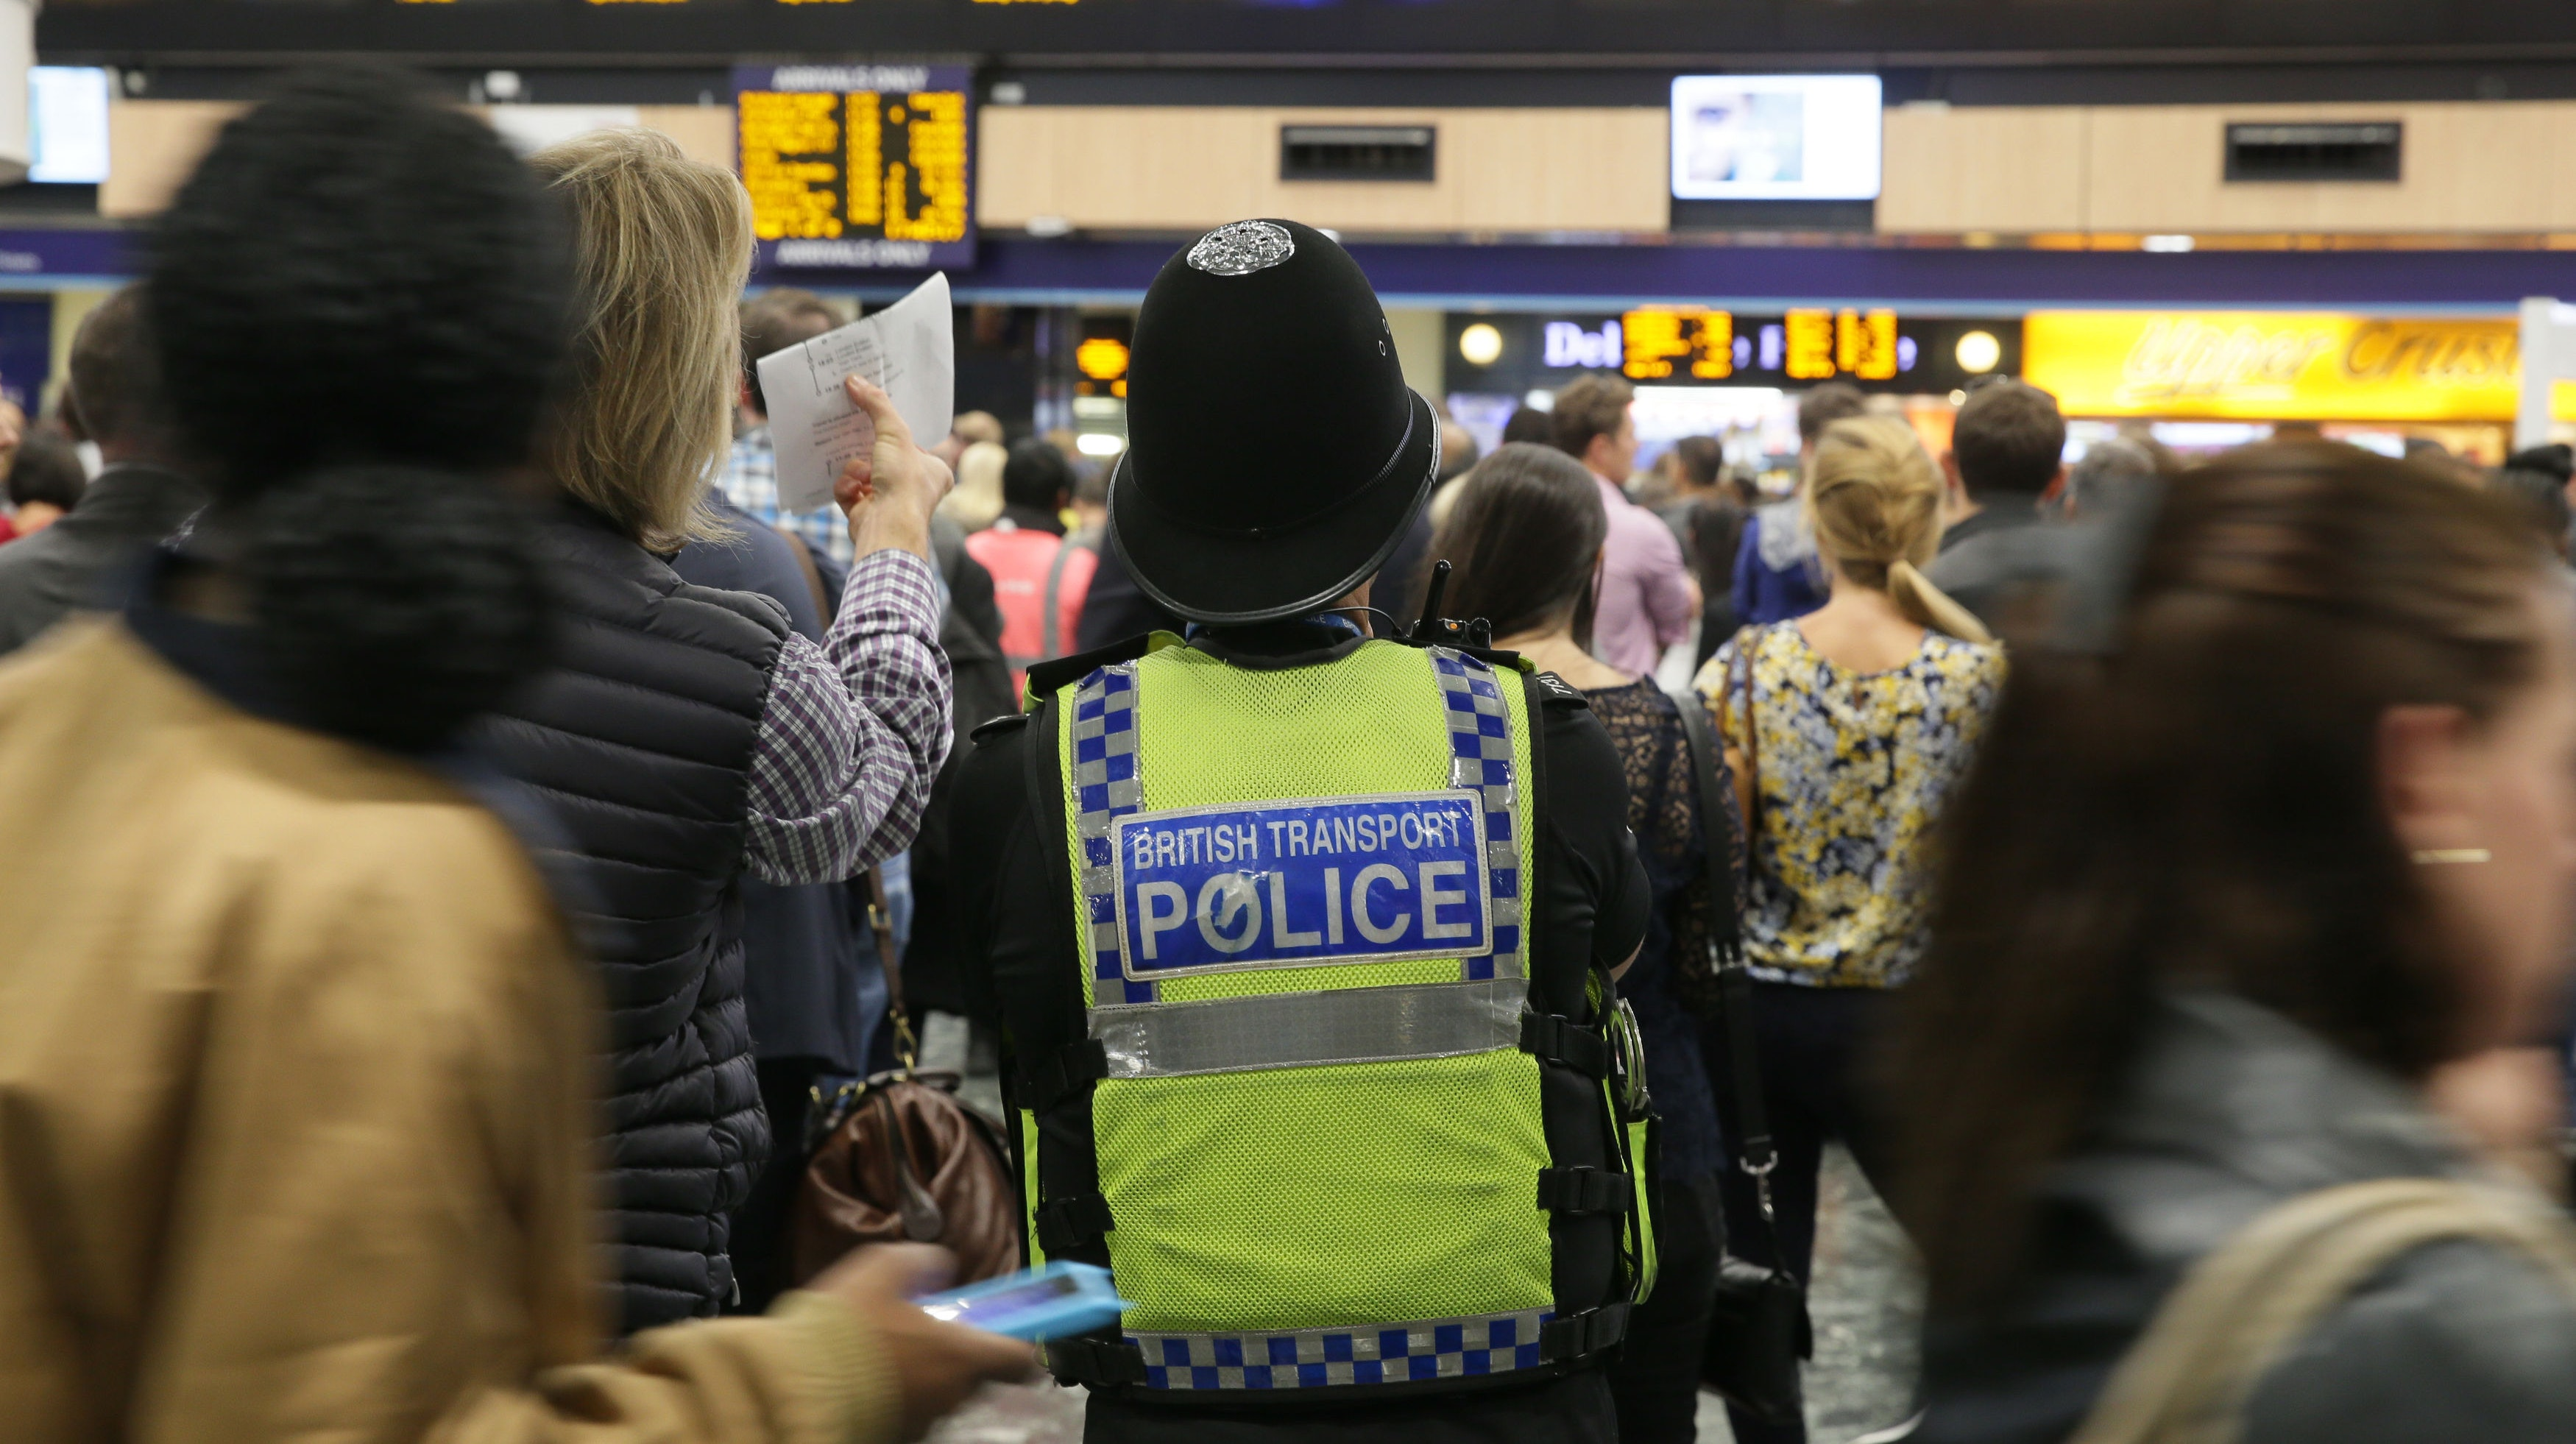 Transport officers oppose police merger